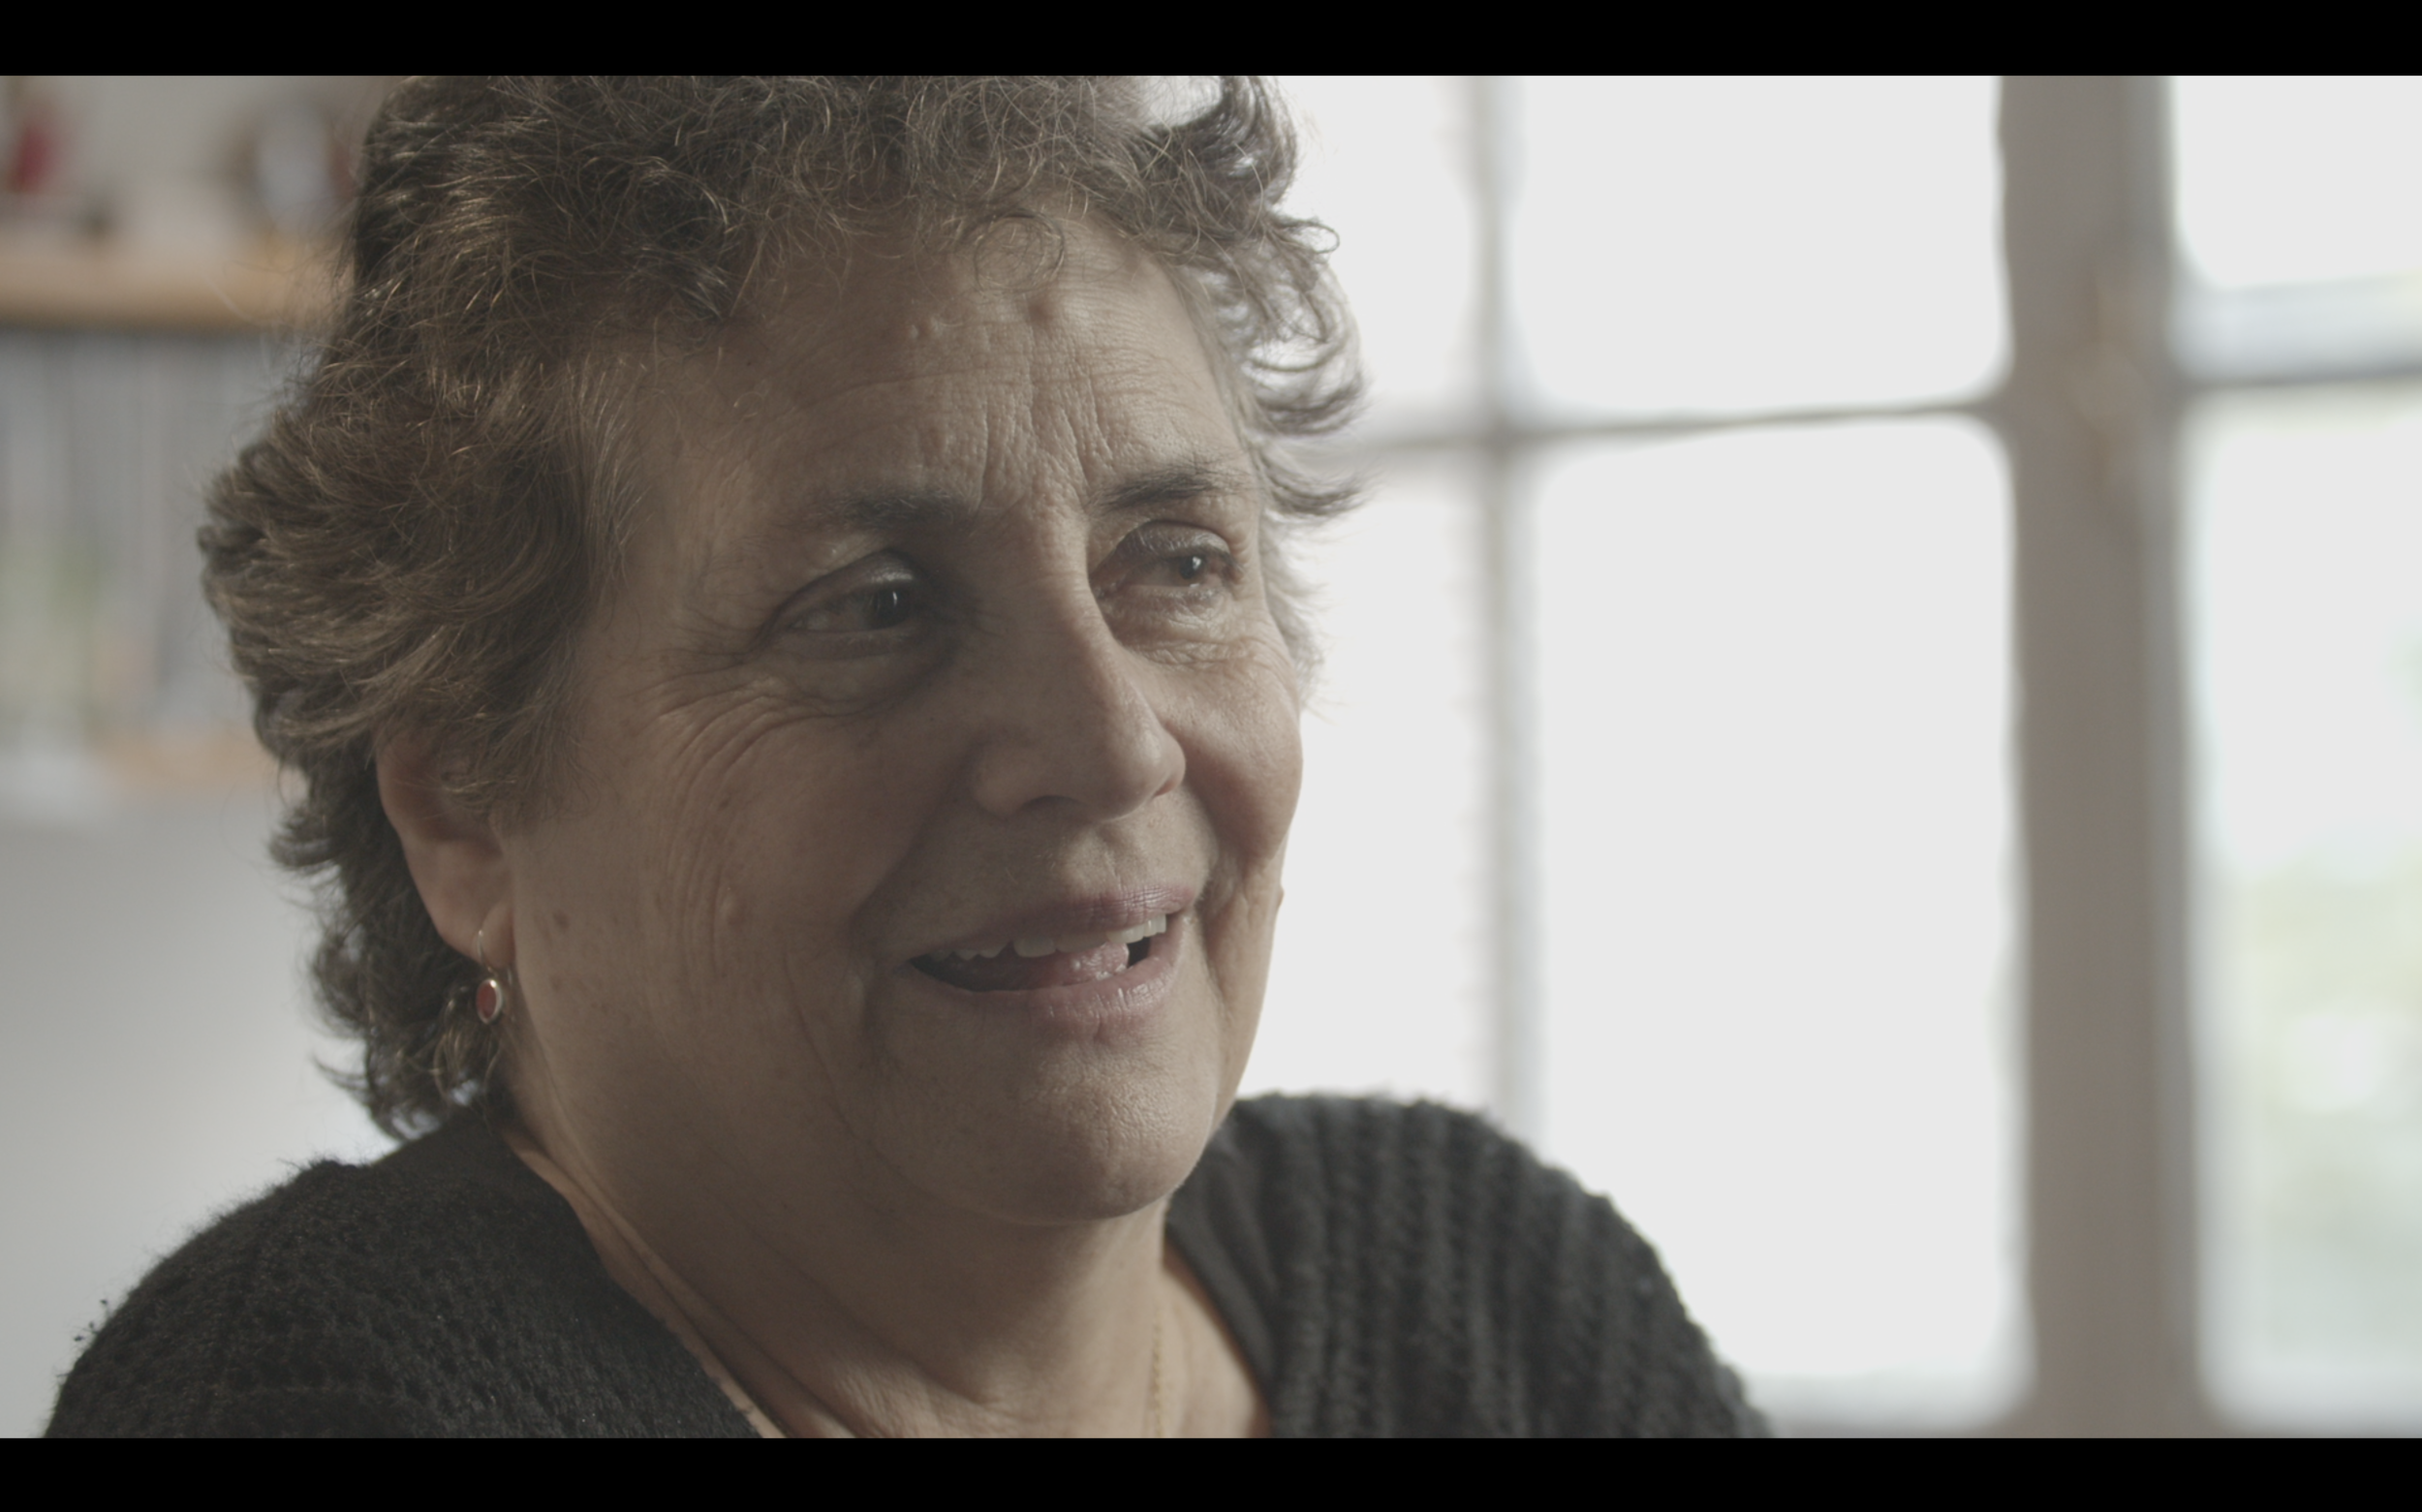 Still from our interview with Soledad Fariña, Poet and Feminist. — (not color corrected.)